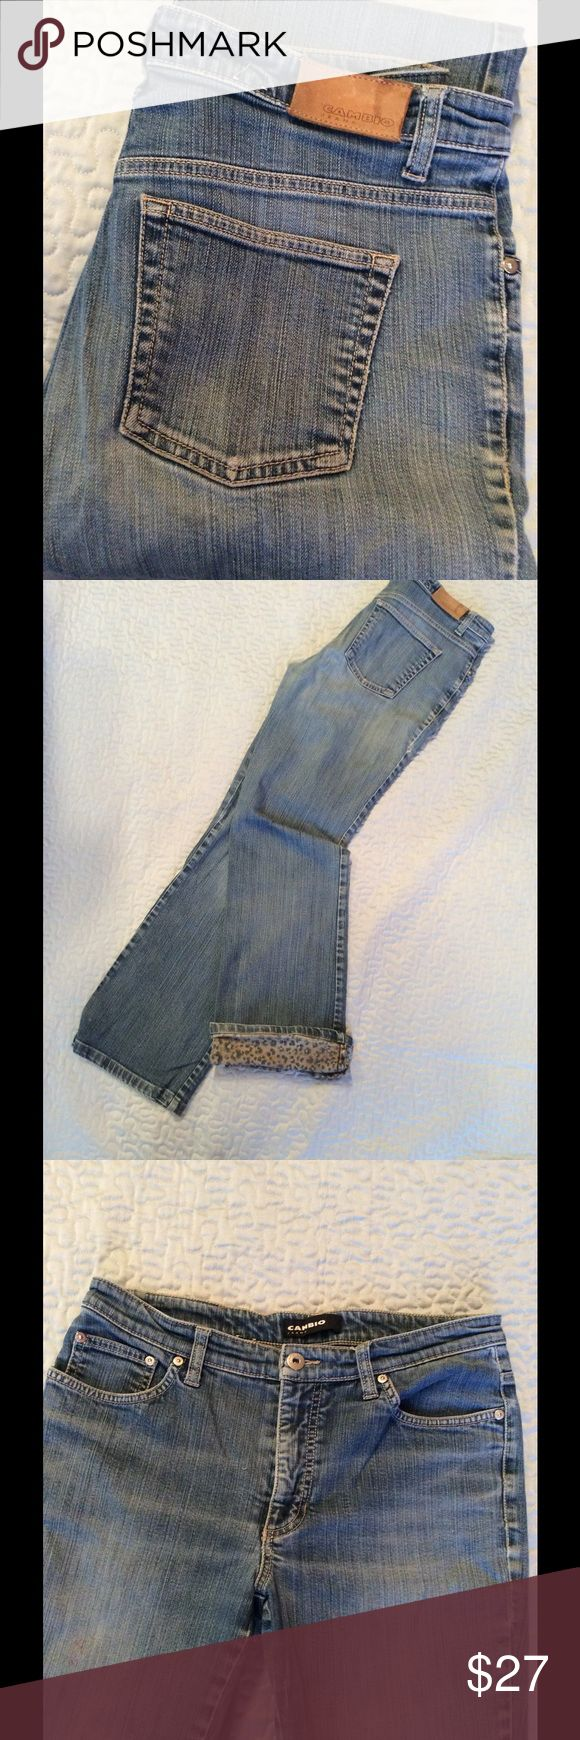 Cambio jeans Gently used Cambio jeans in good shape   Mid rise boot cut. Size 27 Cambio Jeans Boot Cut